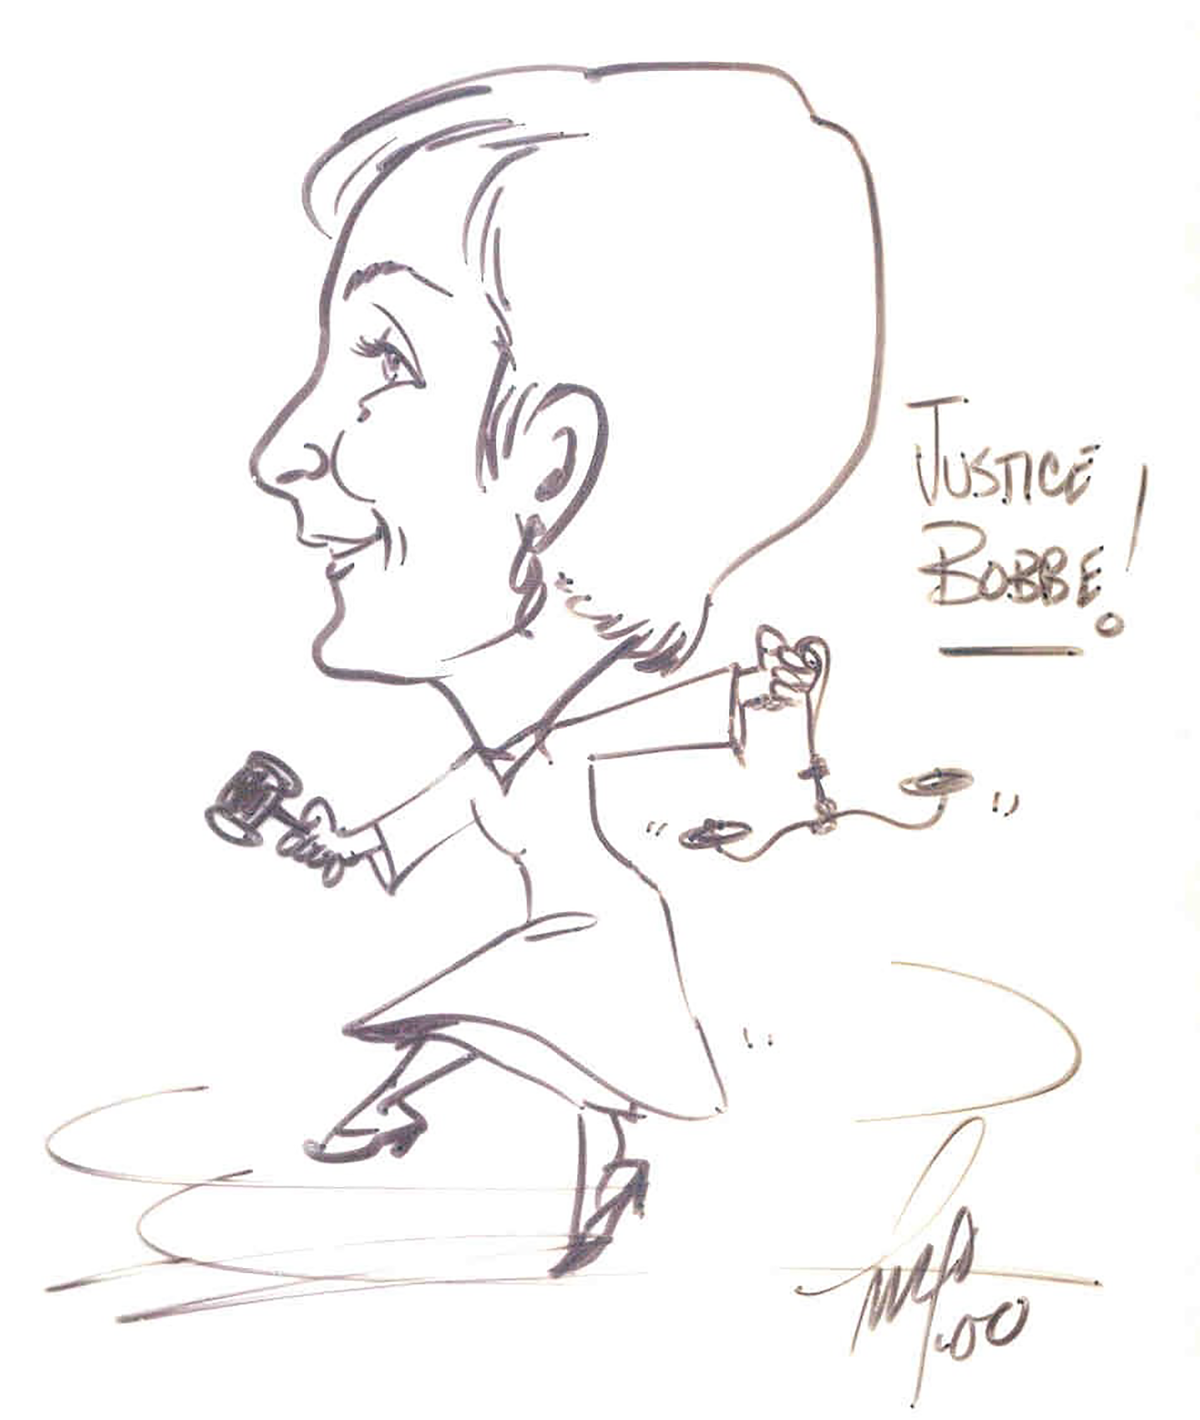 Caricature of Justice Bridge, 2000.